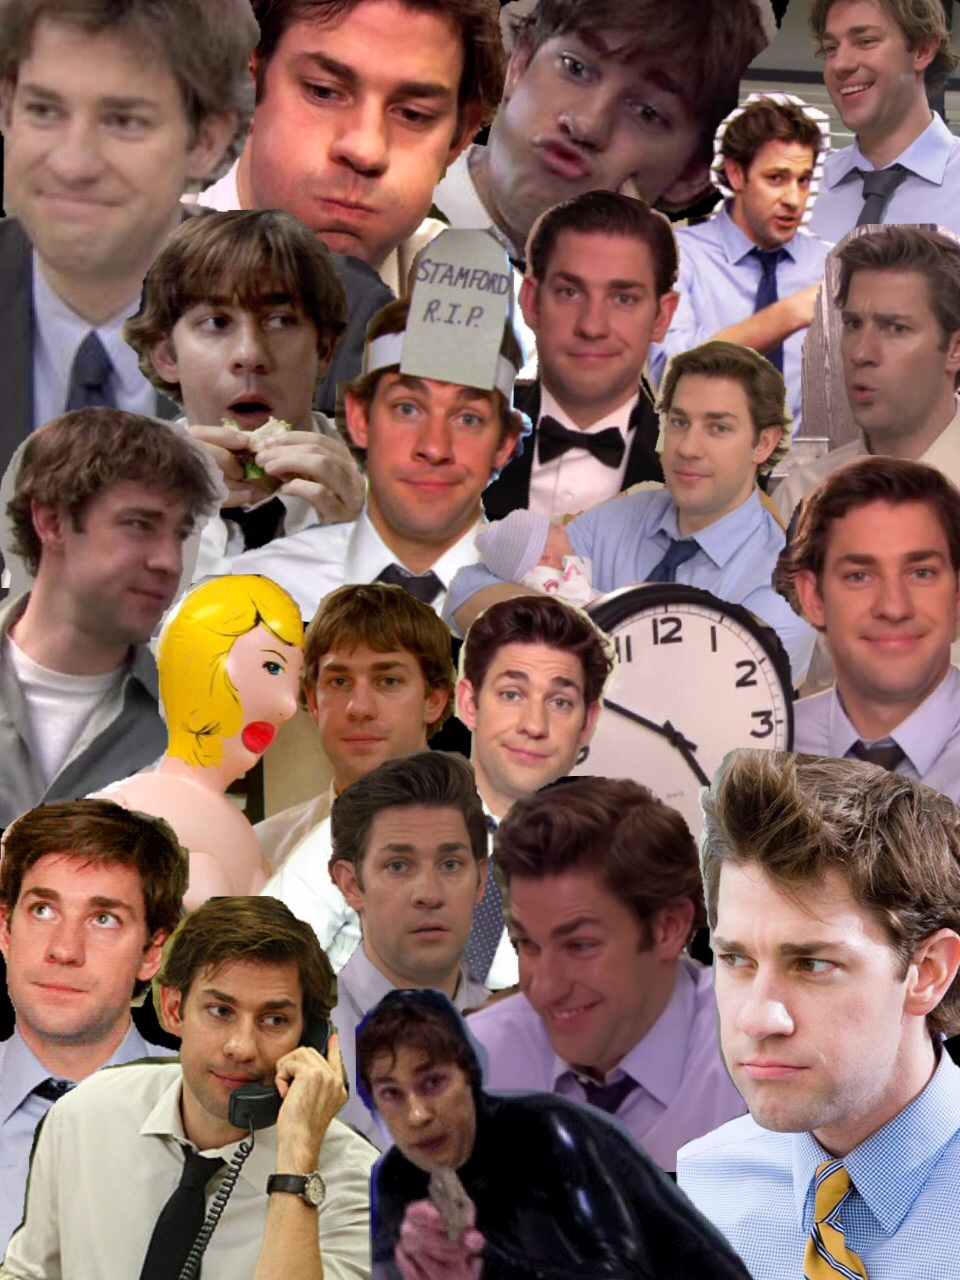 jim halpert collage by me on we heart it